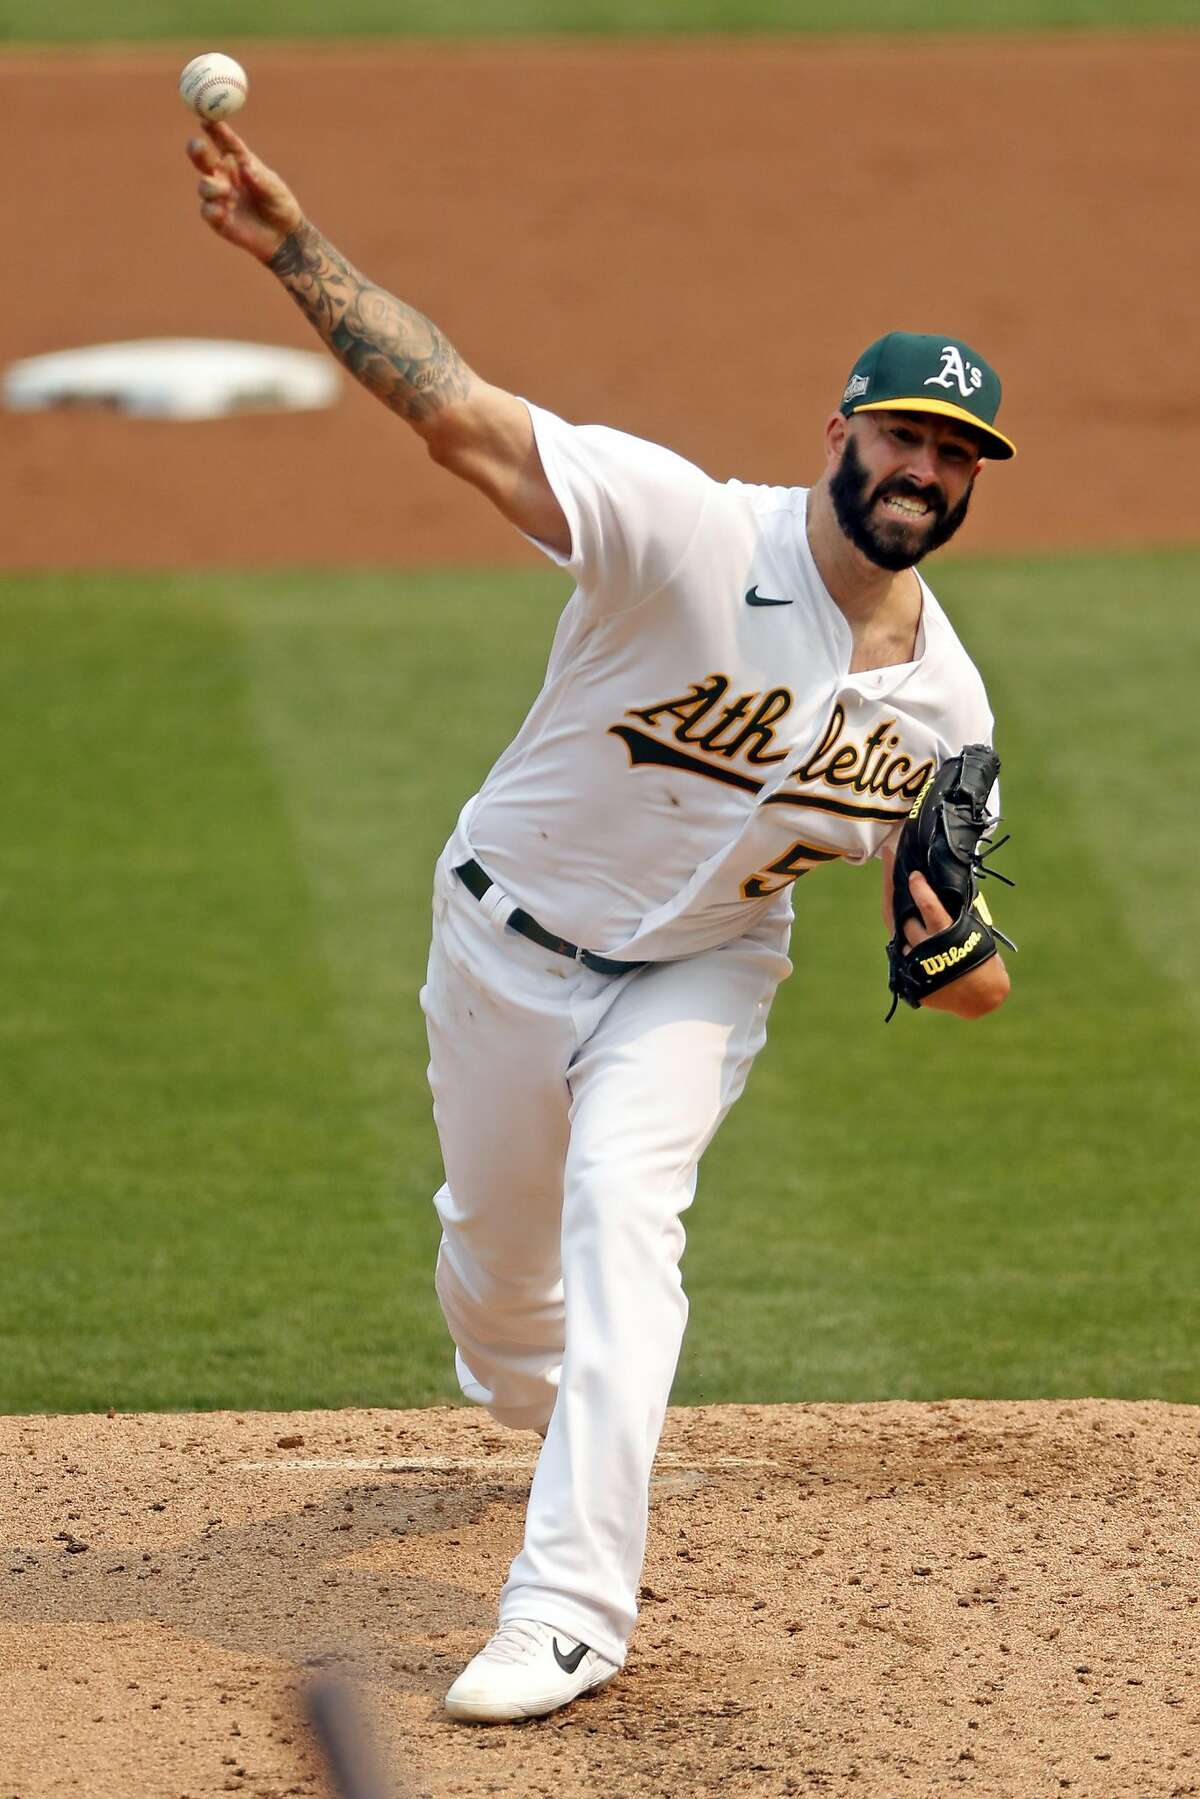 A's starter Mike Fiers could be a factor against the Astros, his former team. Fiers, who hasn't faced the Astros in 2020, helped expose the team's playoff sign-stealing in the offseason.